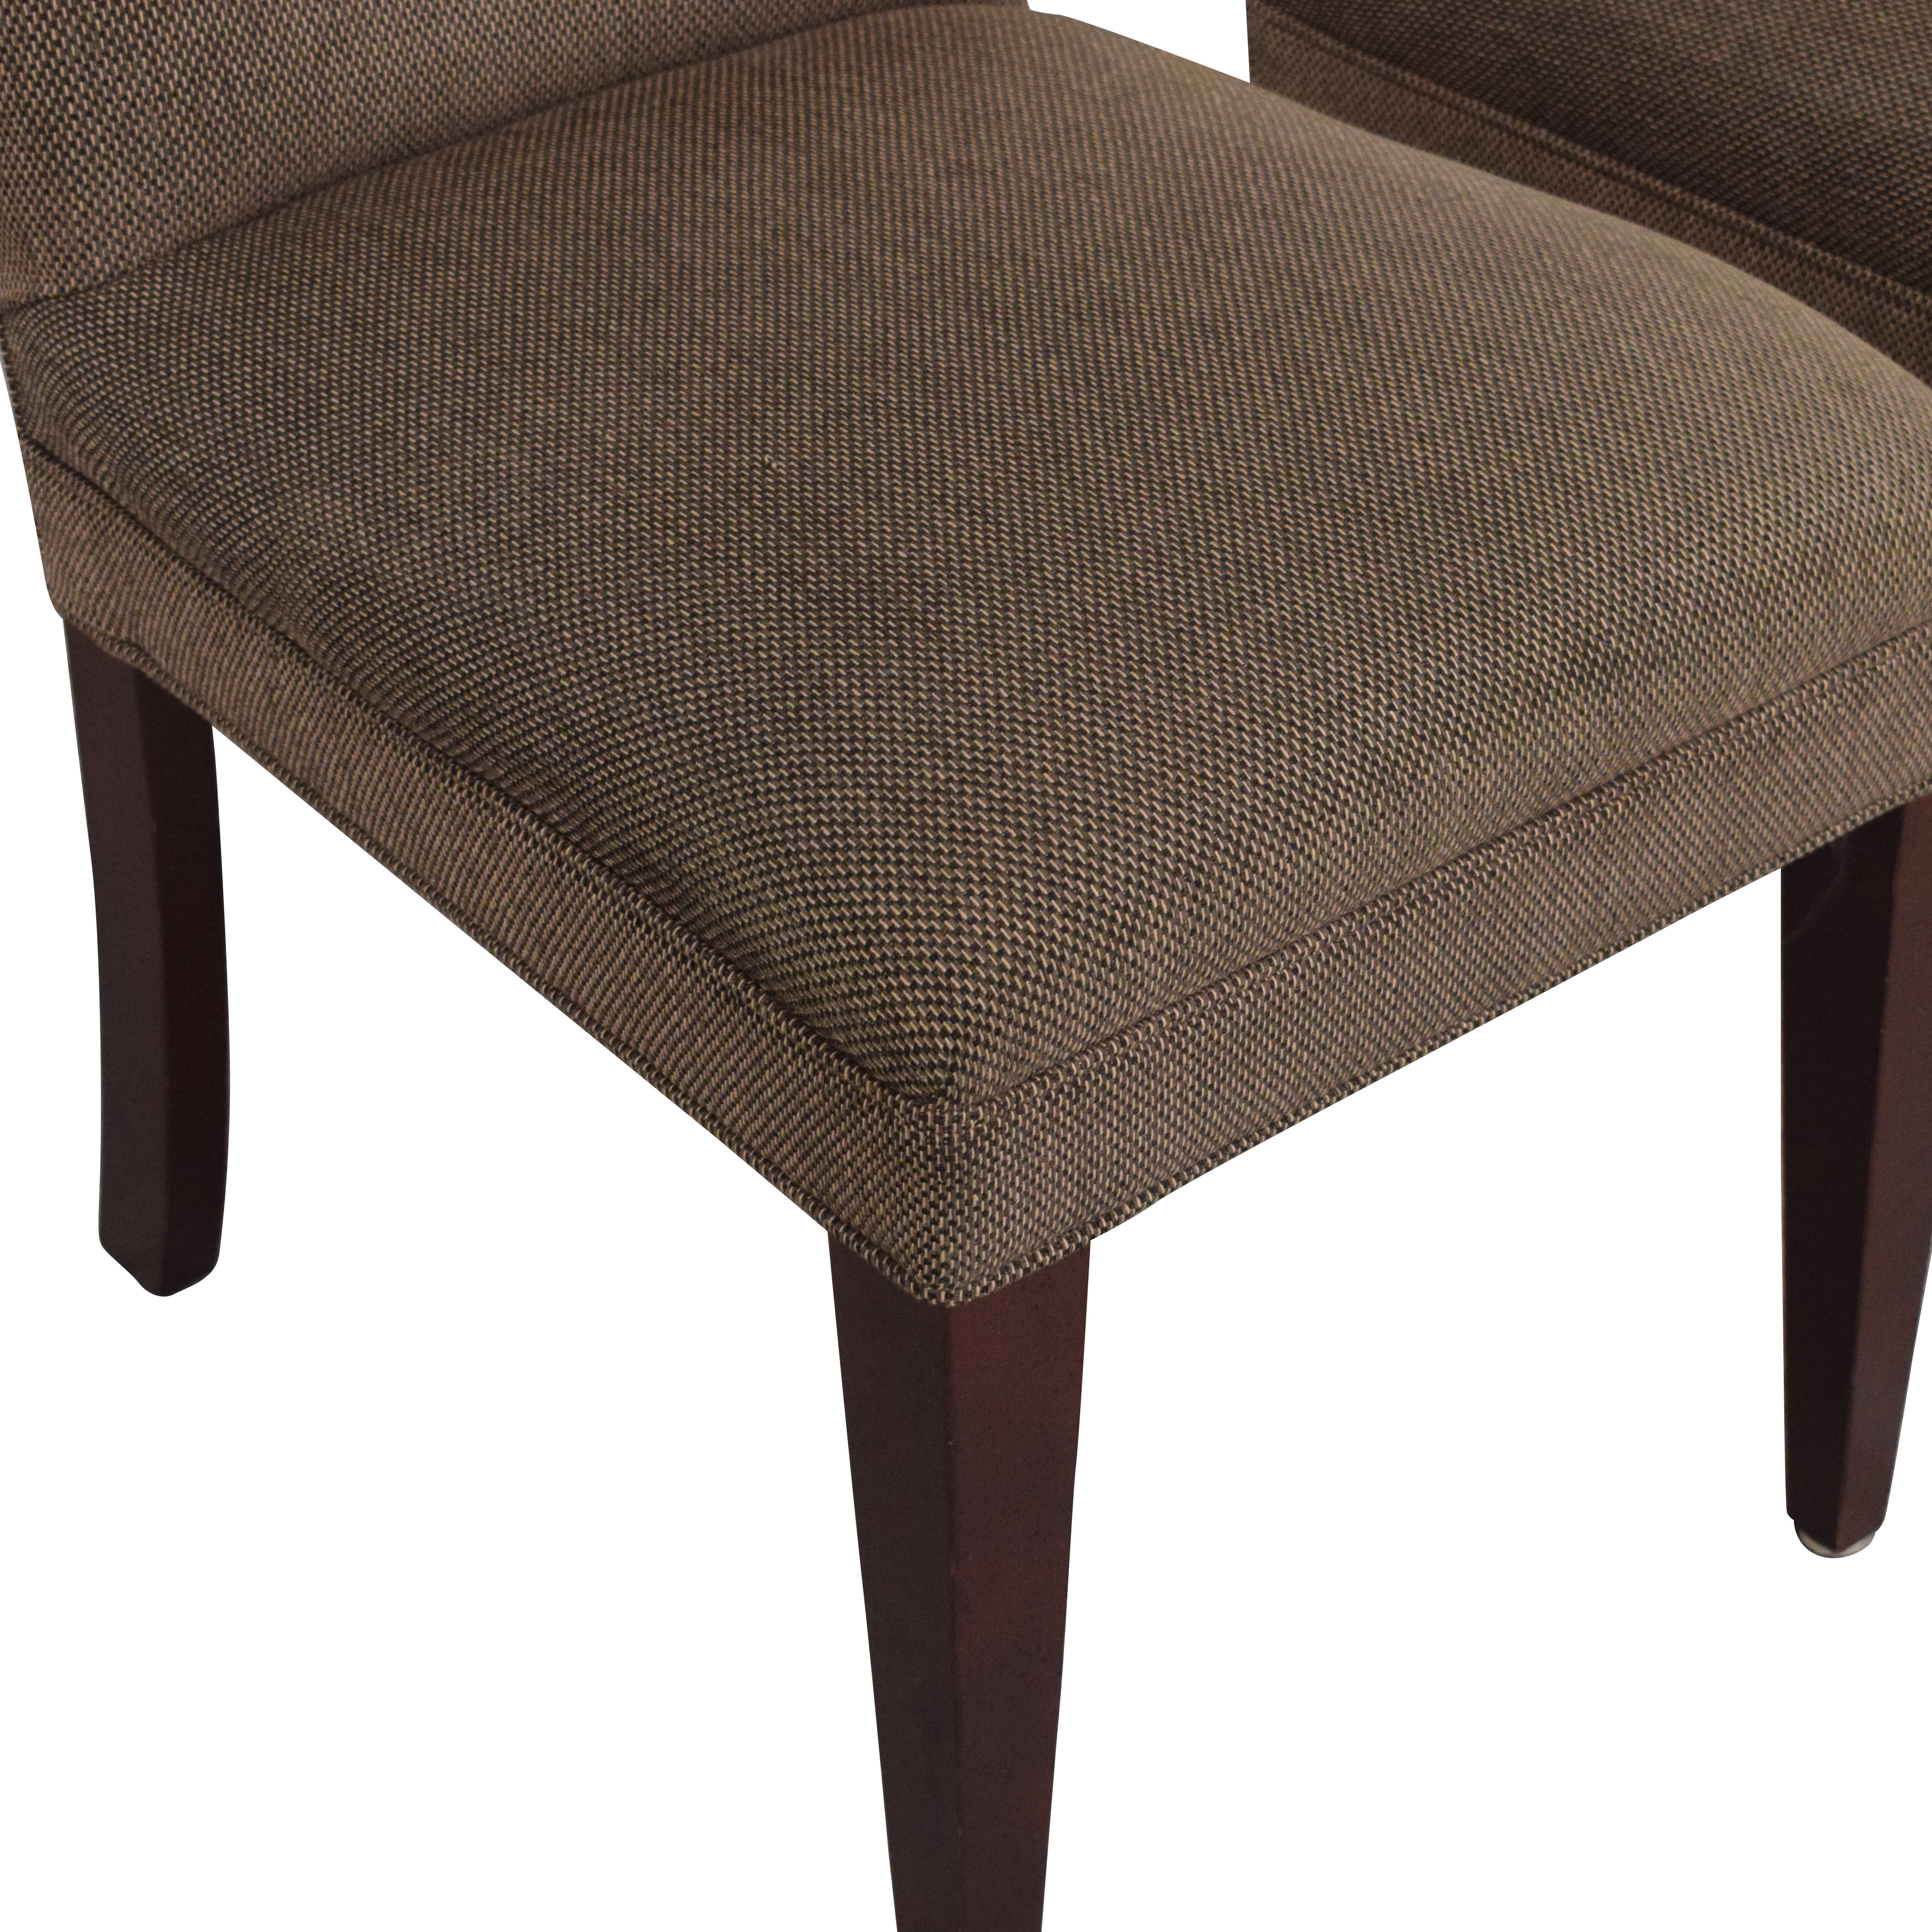 Restoration Hardware Restoration Hardware Grayson Dining Chairs on sale